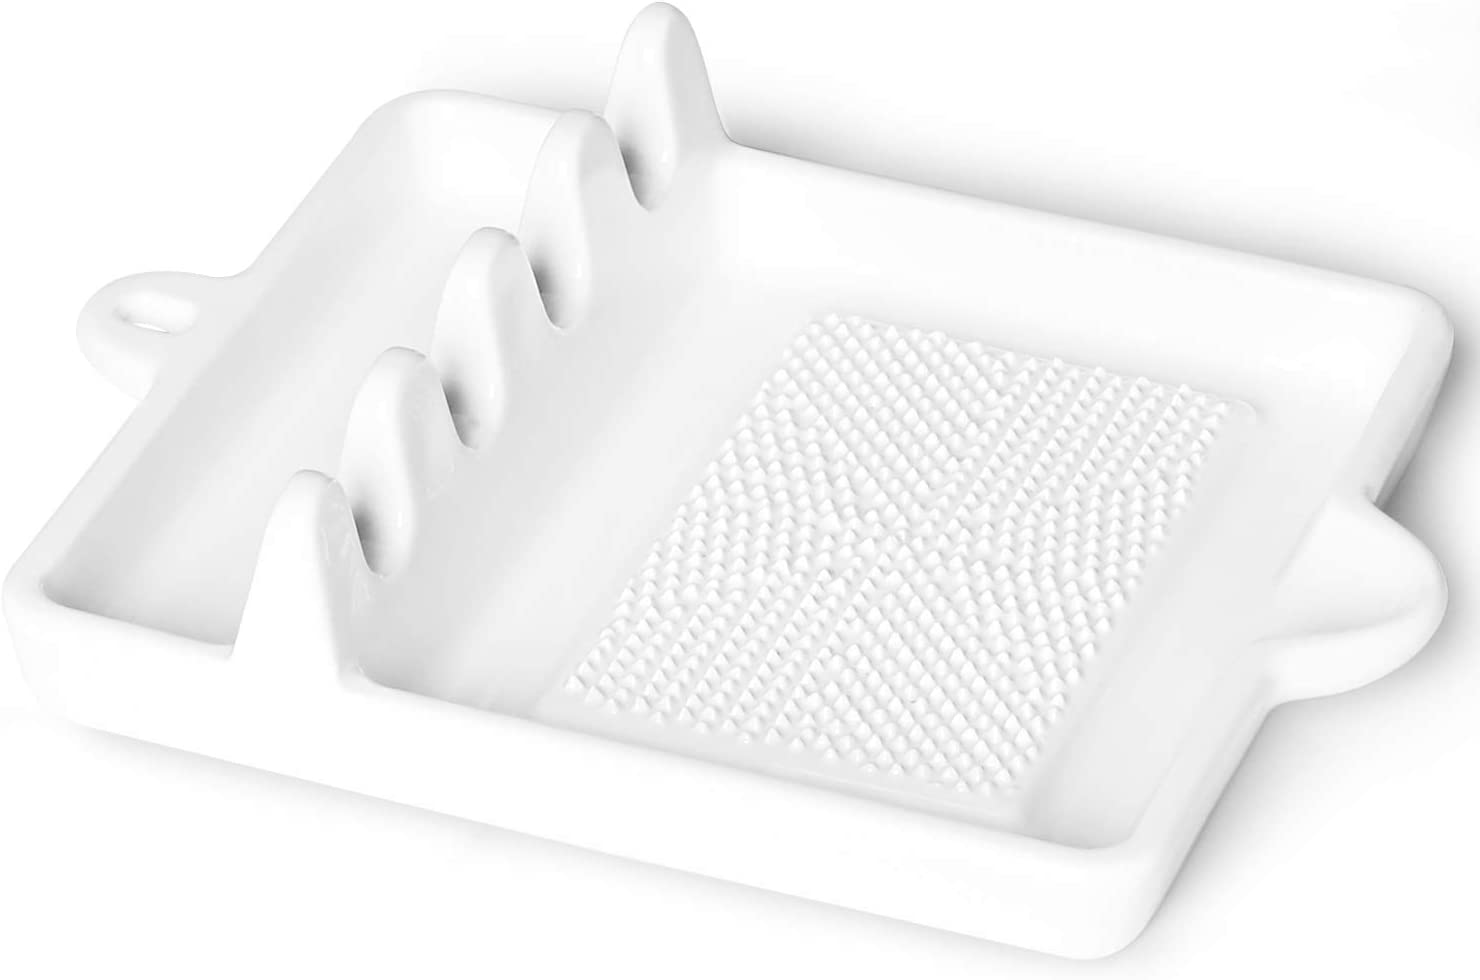 White Grater Plate for Kitchen Porcelain Spatula Rack with Lid Holder ONTUBE Multifunction Spoon Rests